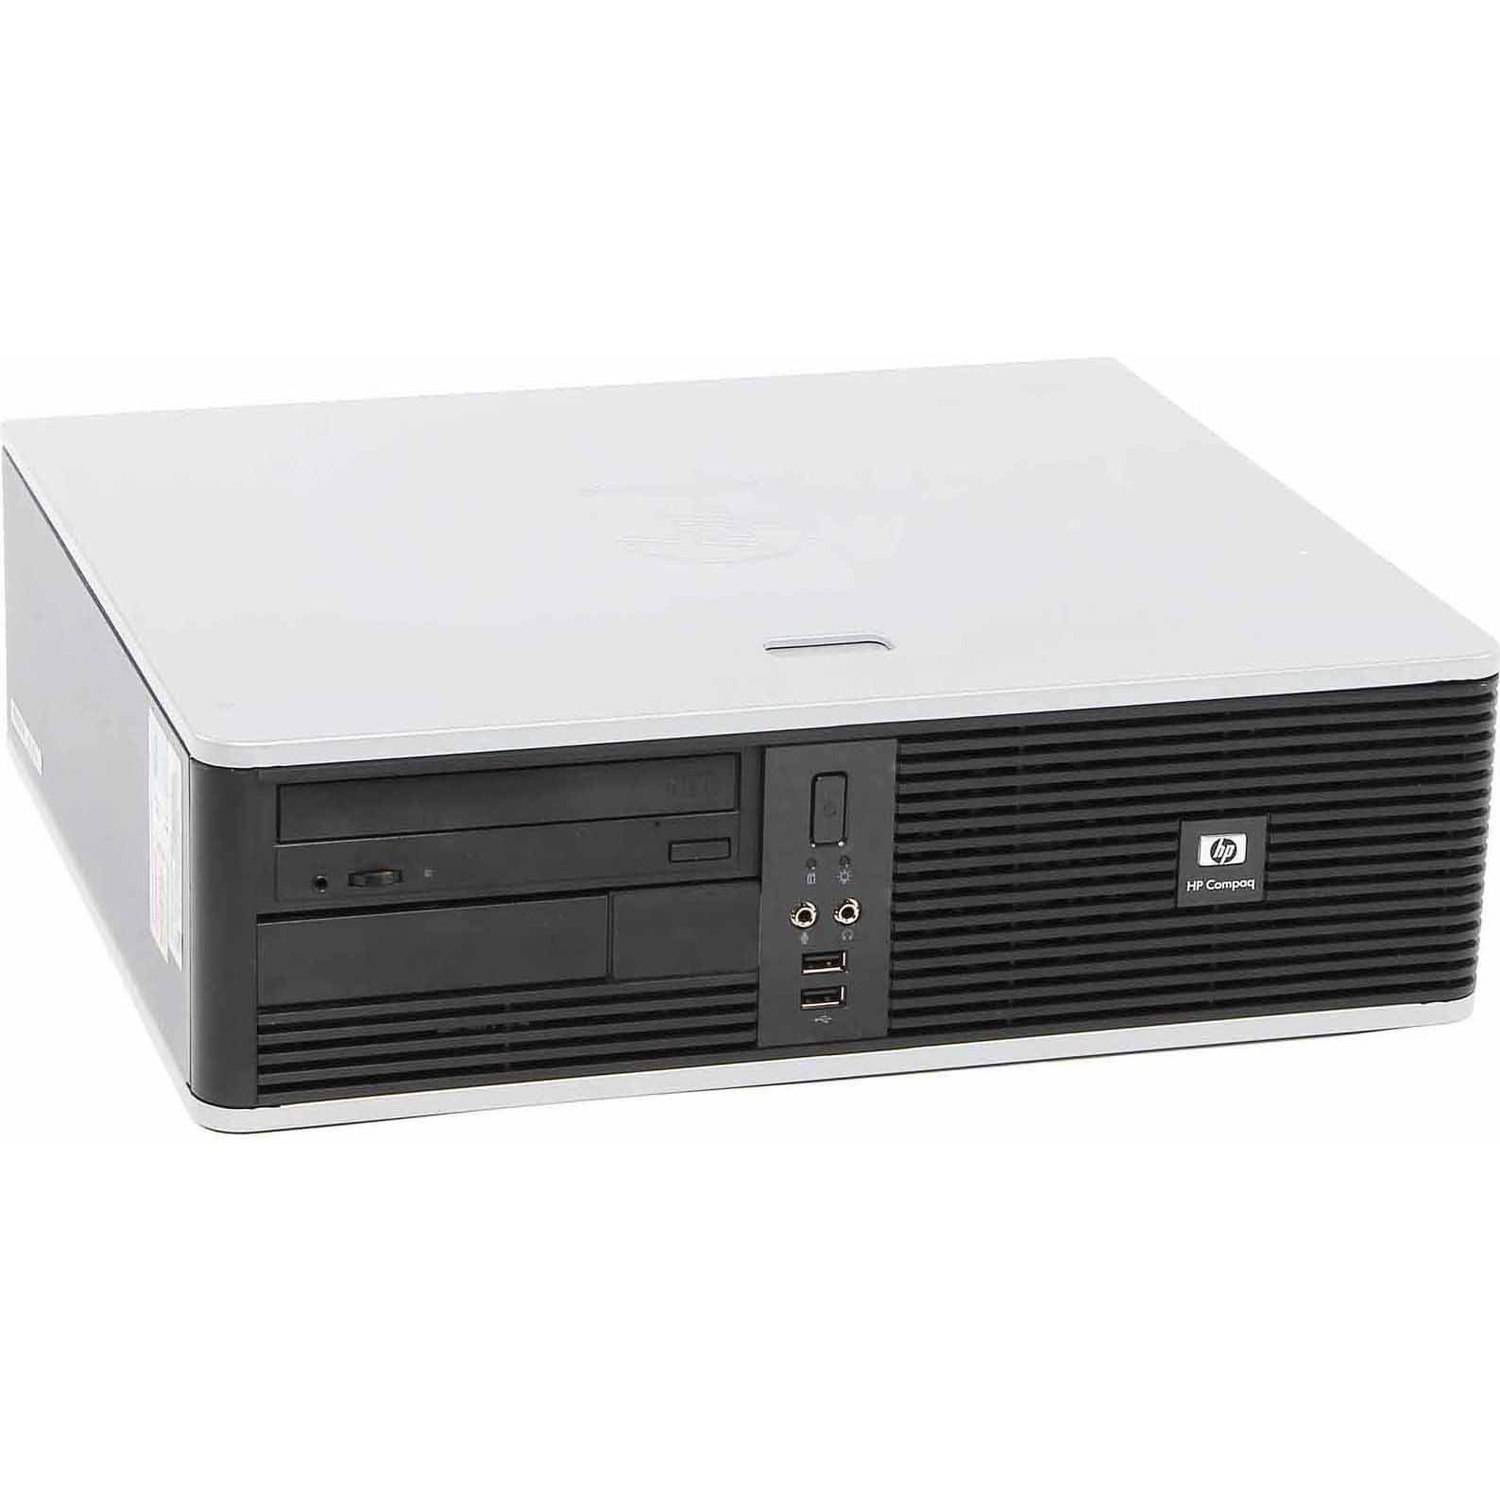 Refurbished HP DC5700 Desktop PC with Intel Core 2 Duo Processor, 2GB Memory, 160GB Hard Drive and Windows 7 Home Premium (Monitor Not Included)